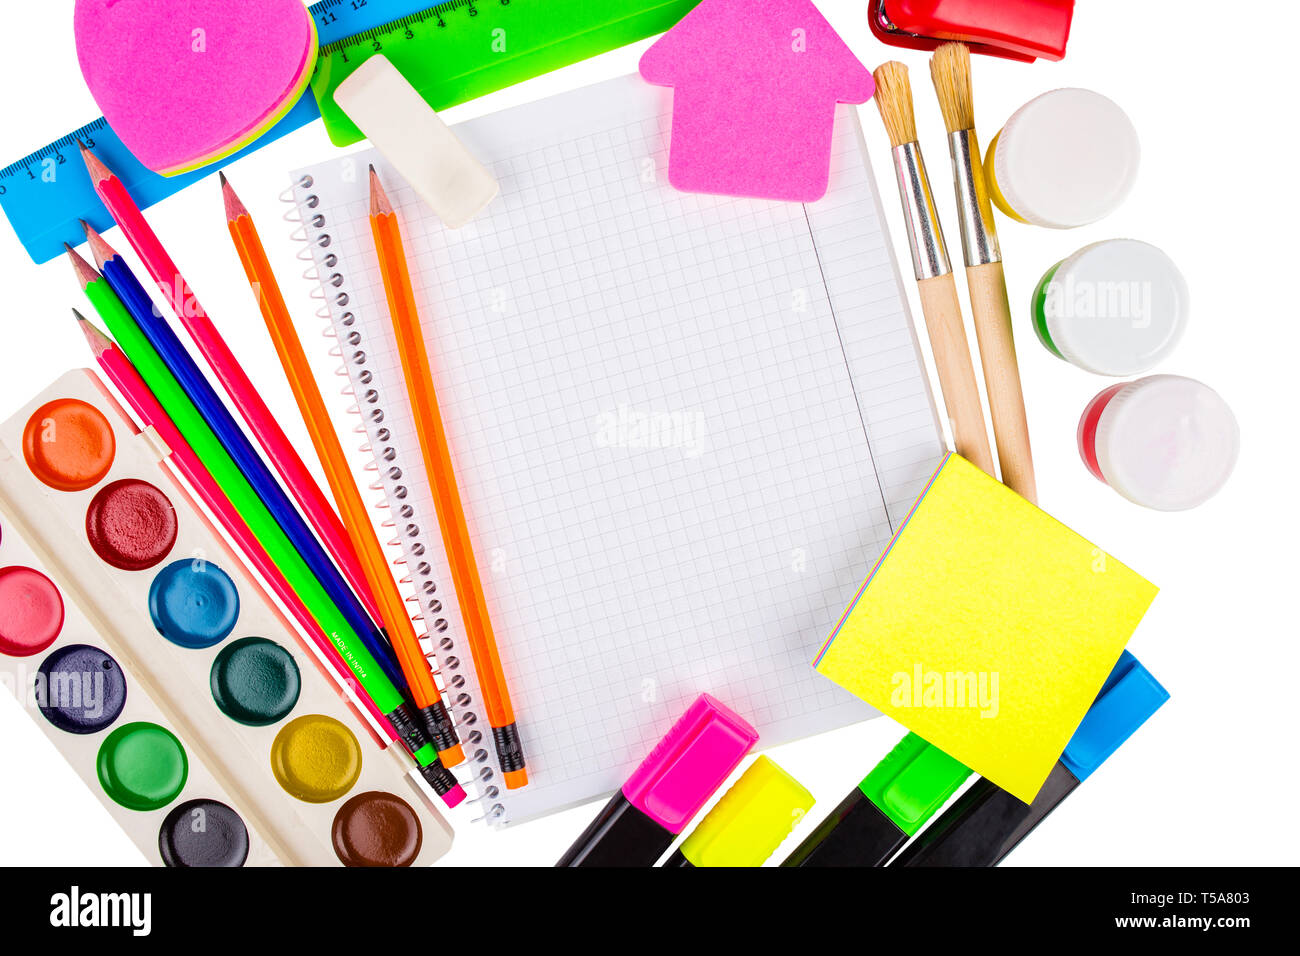 Stationery isolated on white. Notebooks, markers, pencils, rulers, stickers, stapler, paints - Stock Image